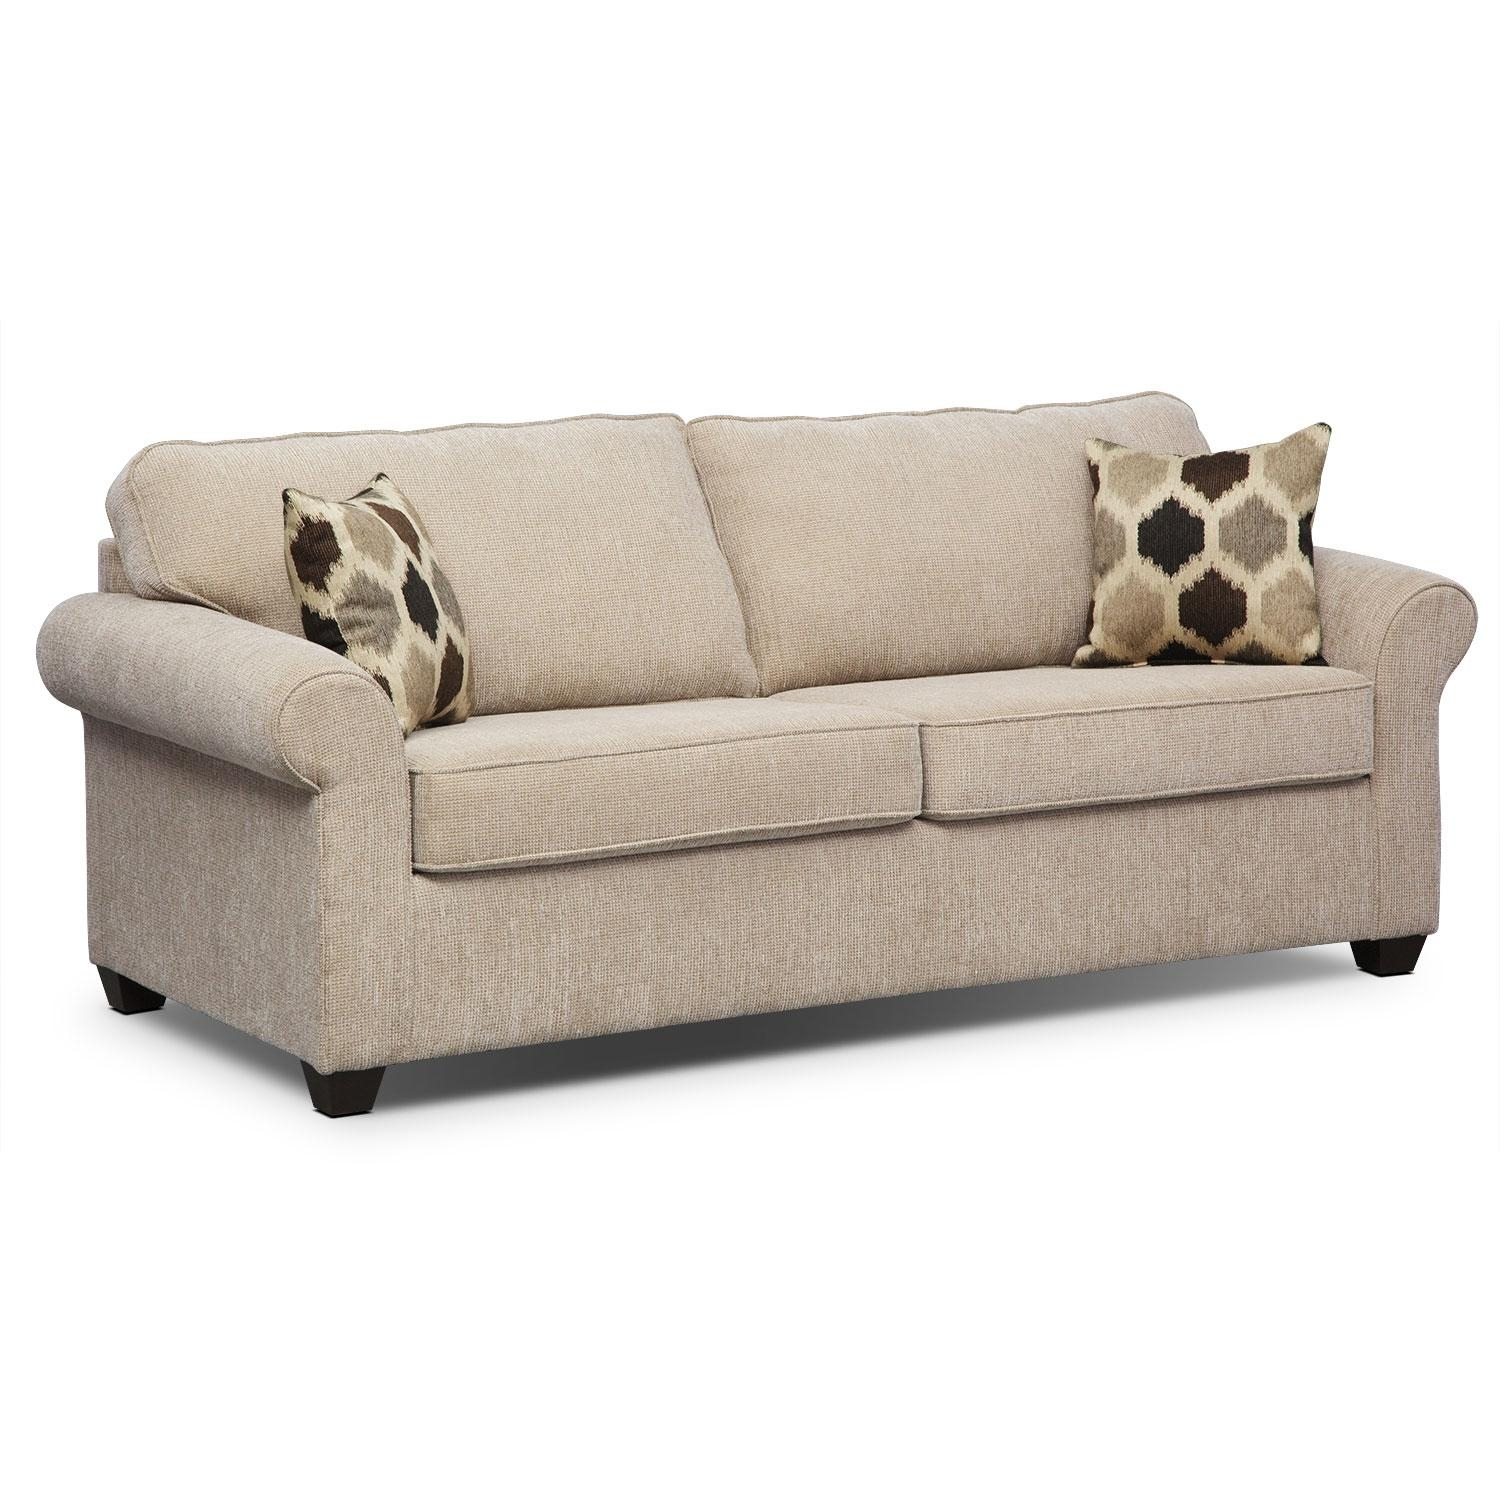 Queen Size Sleeper Sofa – Interior Design With Regard To Queen Convertible Sofas (Image 11 of 20)